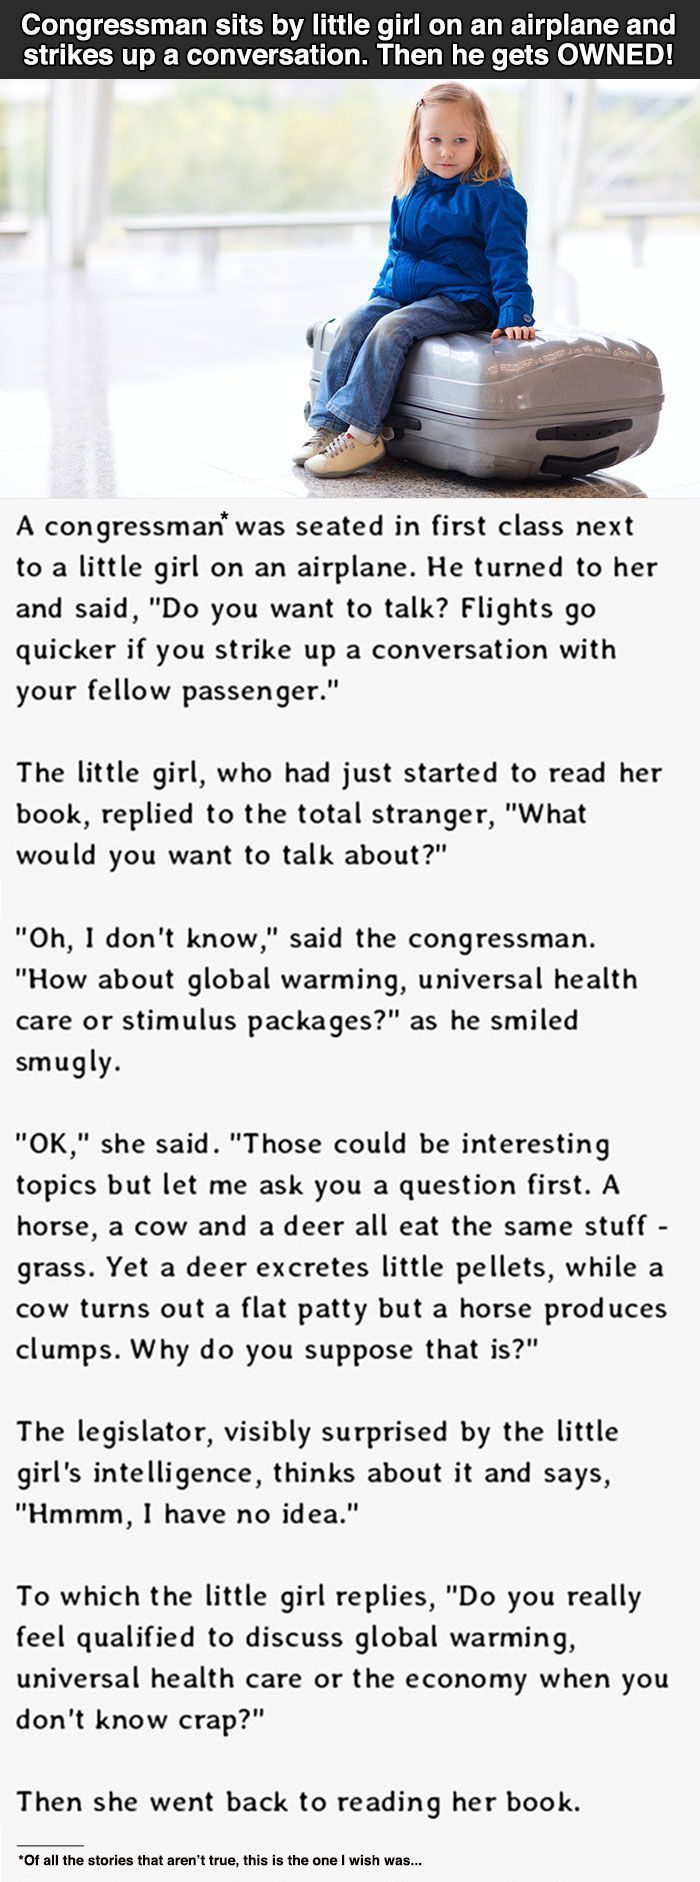 How I gave the sperm to the bank. Funny story